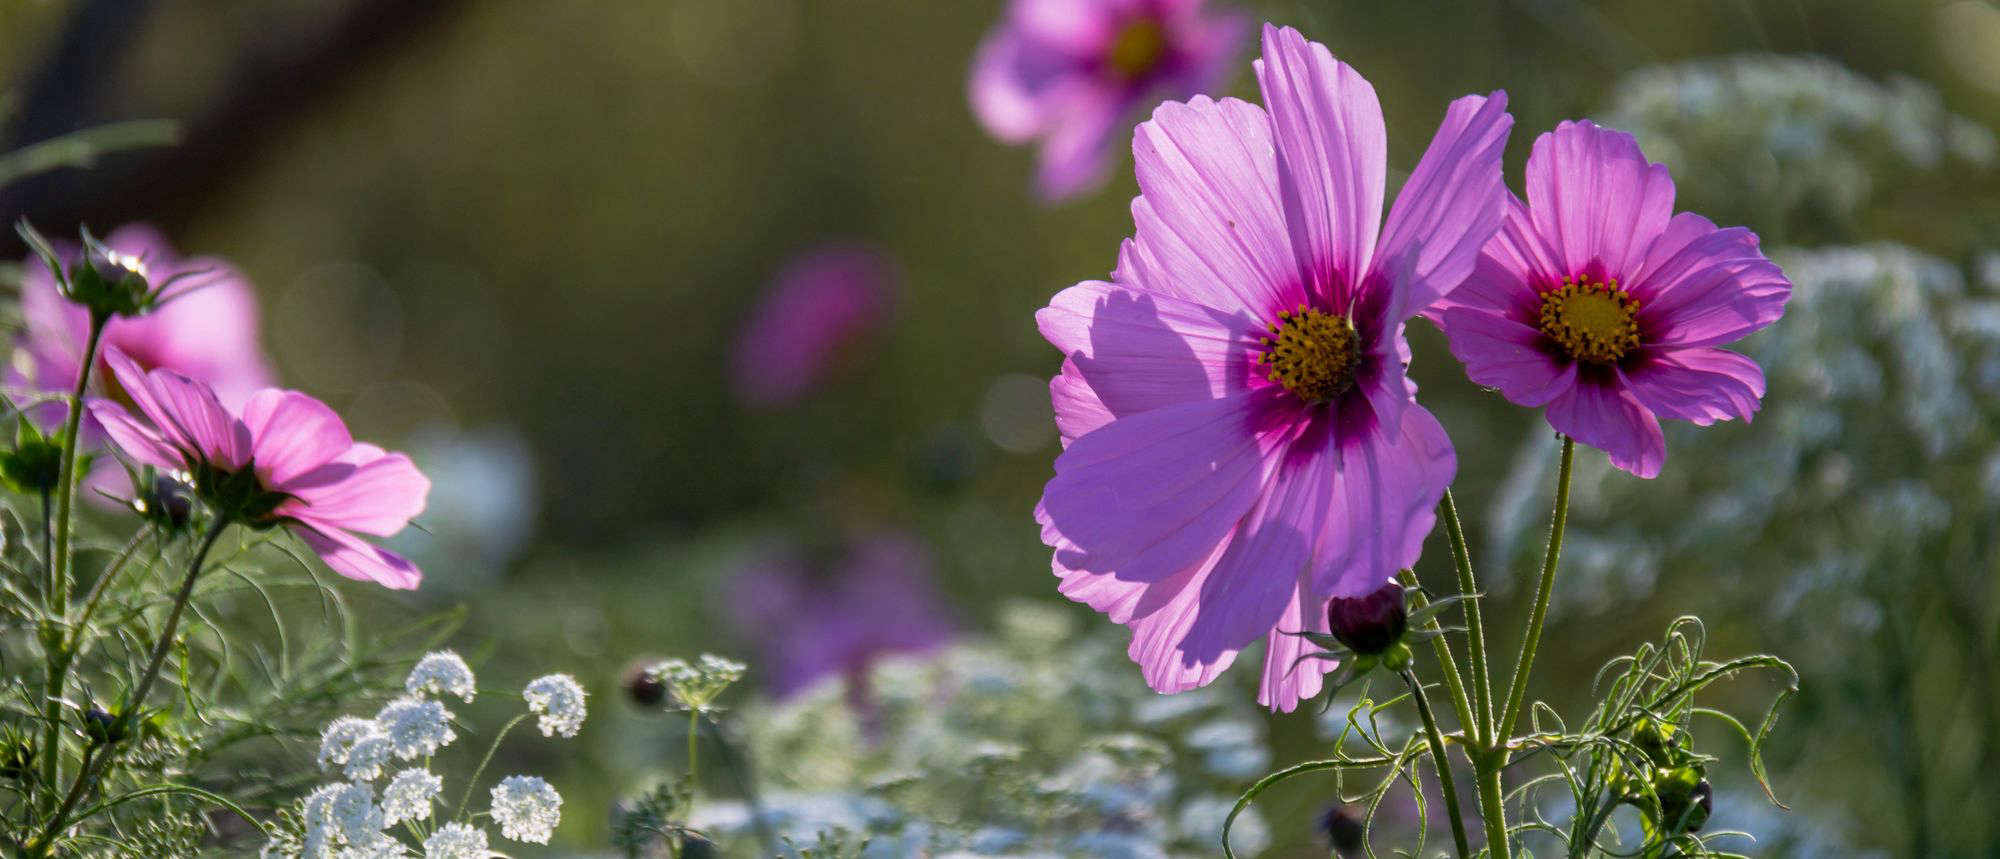 How To Successfully Grow Cosmos A Field Guide To Planting Care